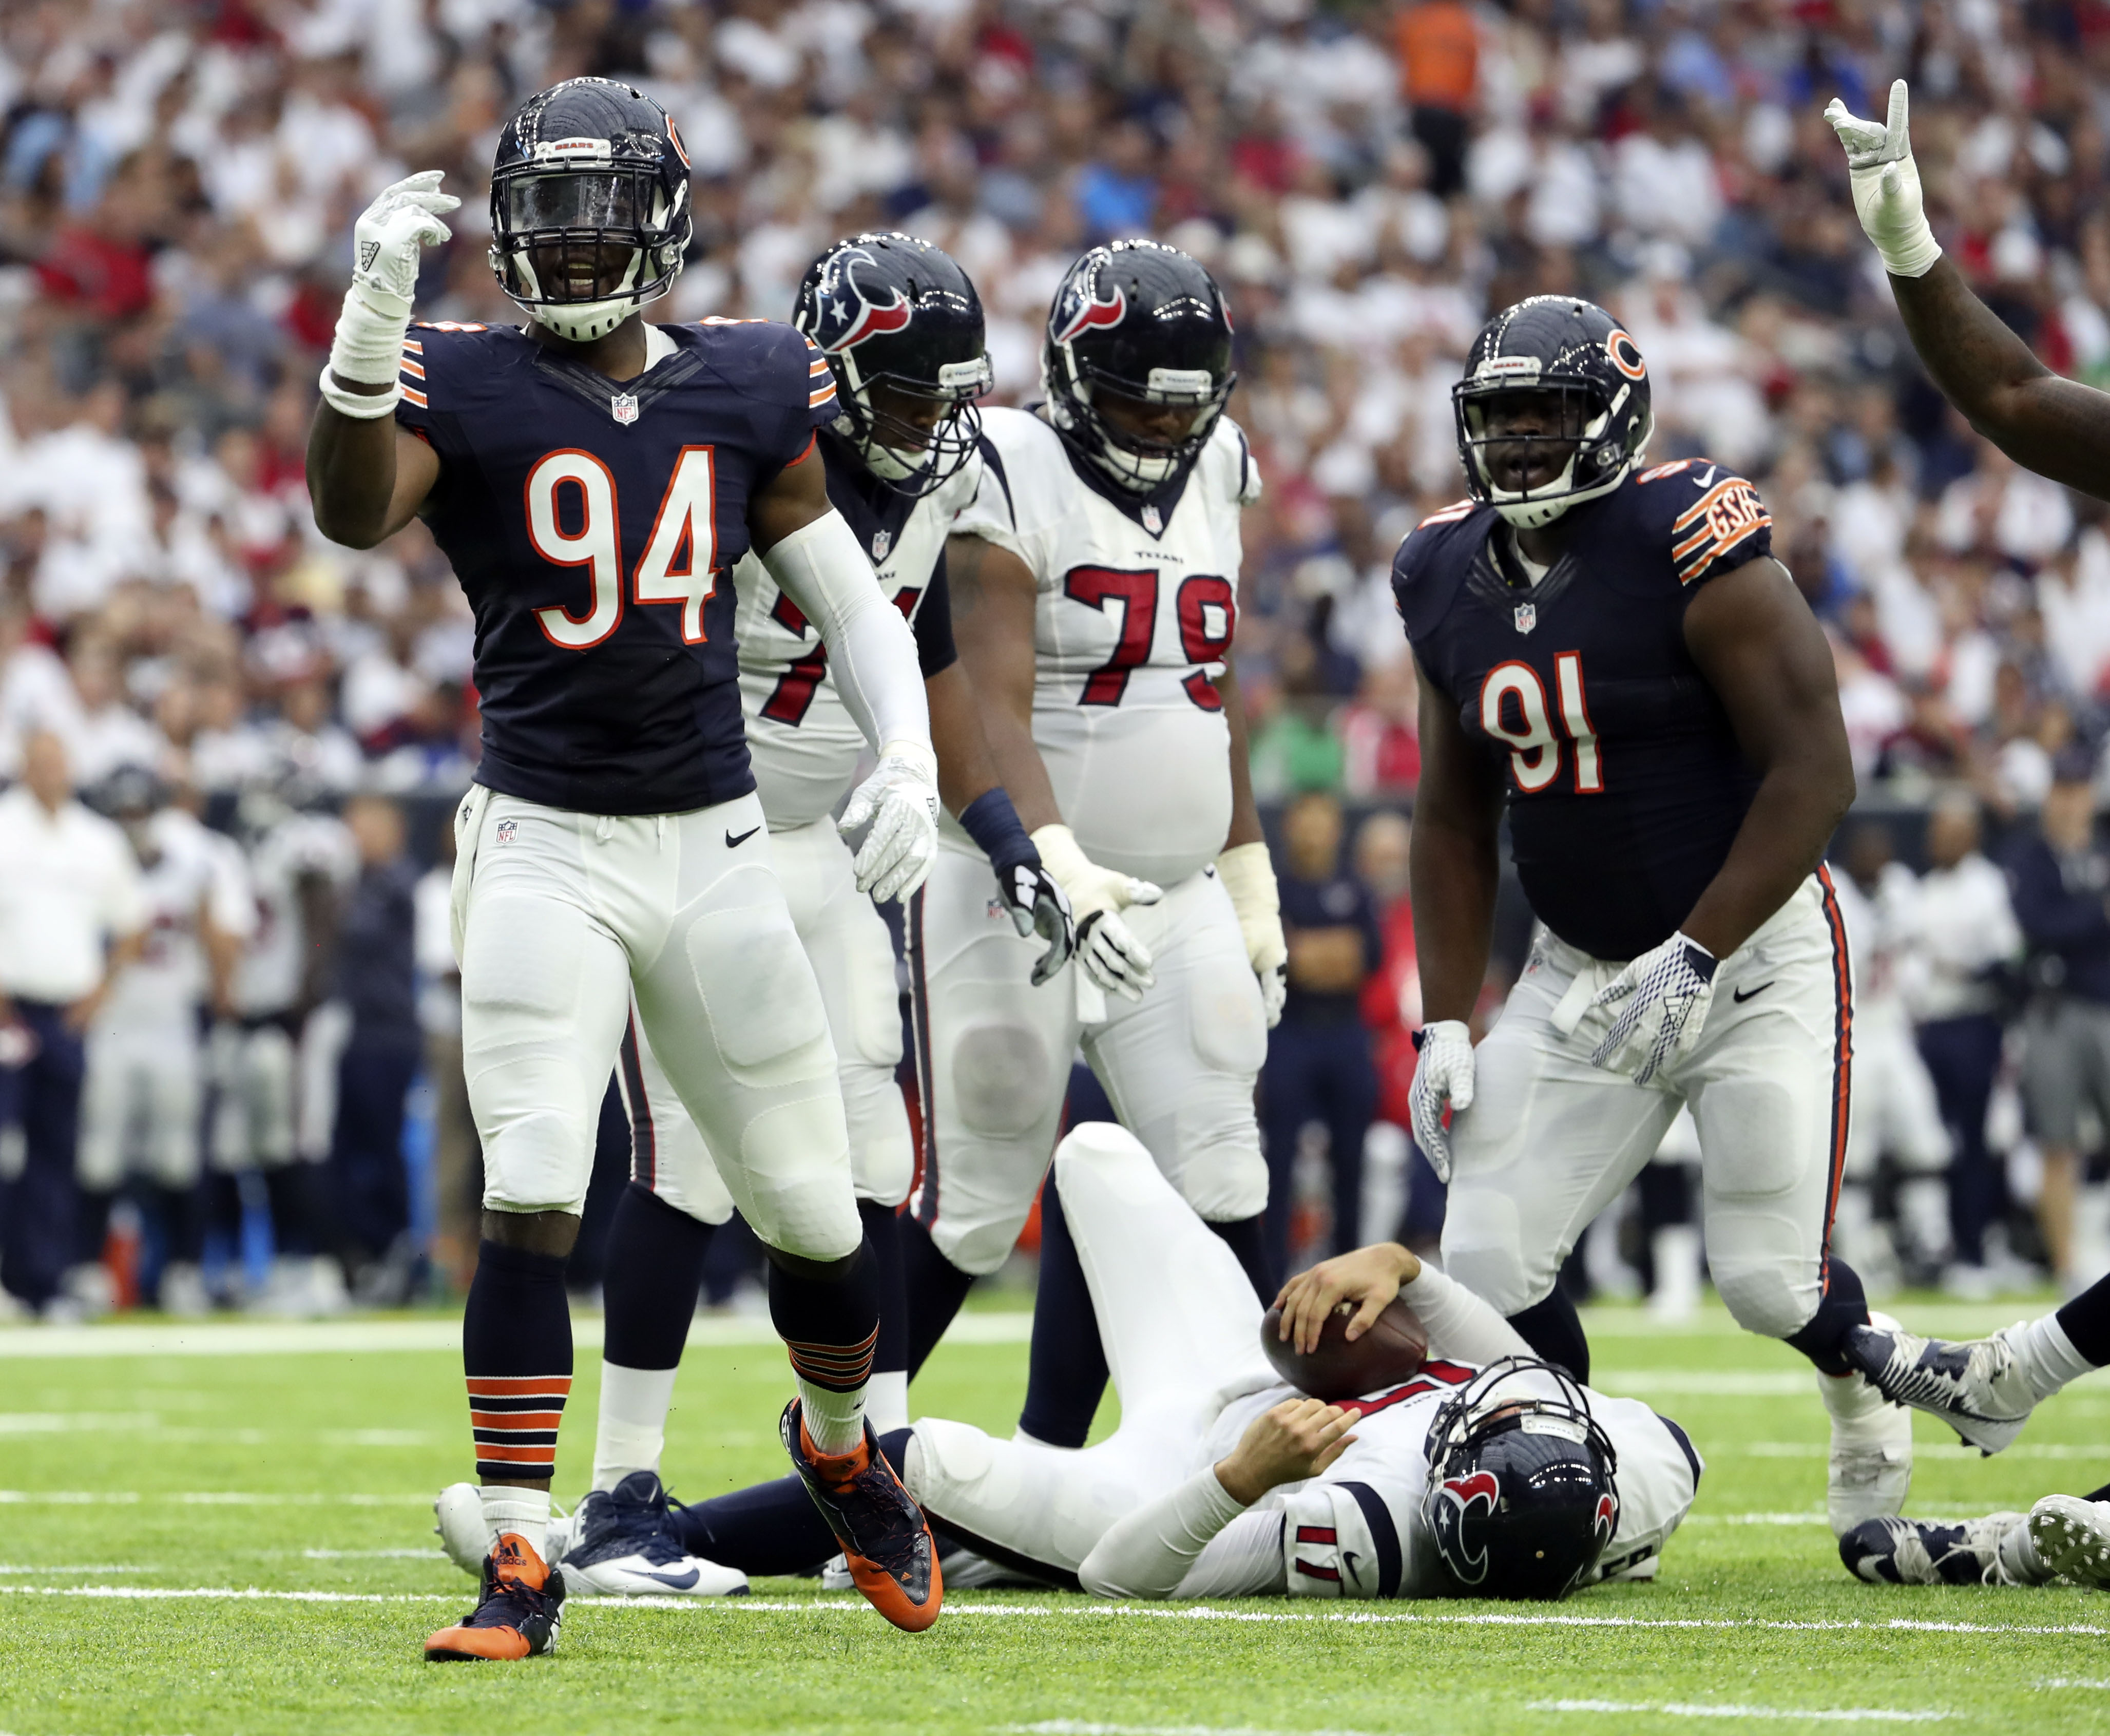 9540286-nfl-chicago-bears-at-houston-texans